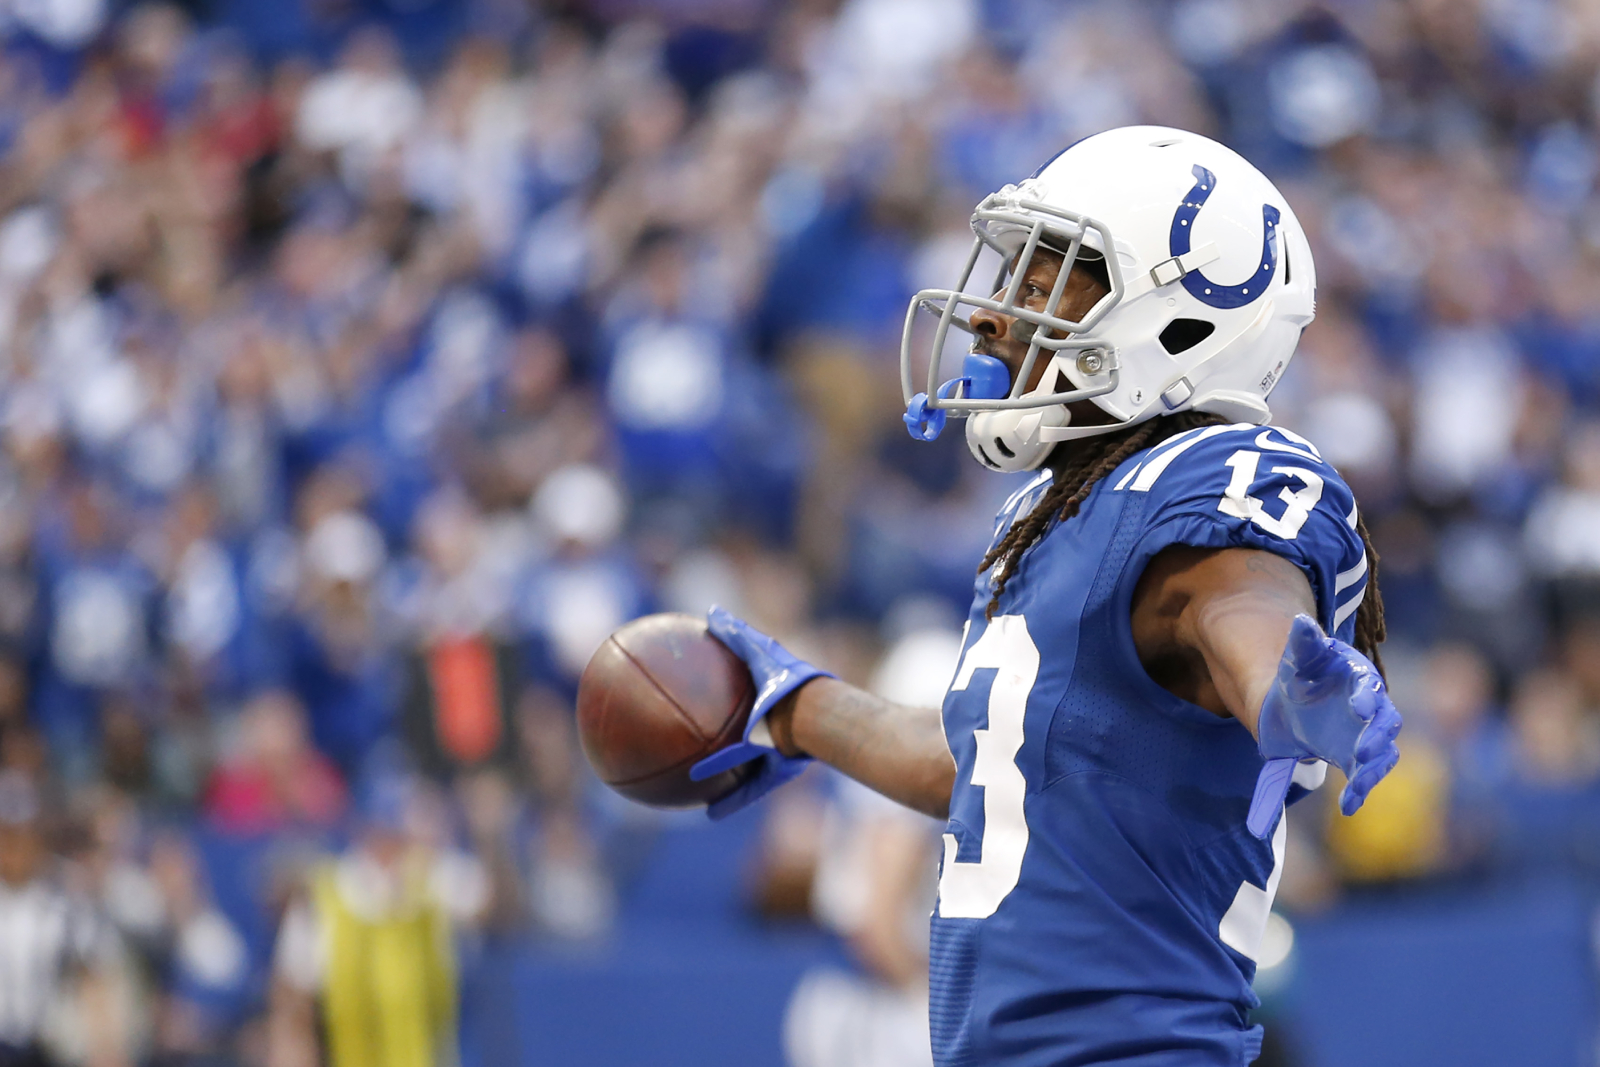 T.Y. Hilton has been a very underrated receiver for the Indianapolis Colts. Recently, he sent a terrifying message to the rest of the NFL.